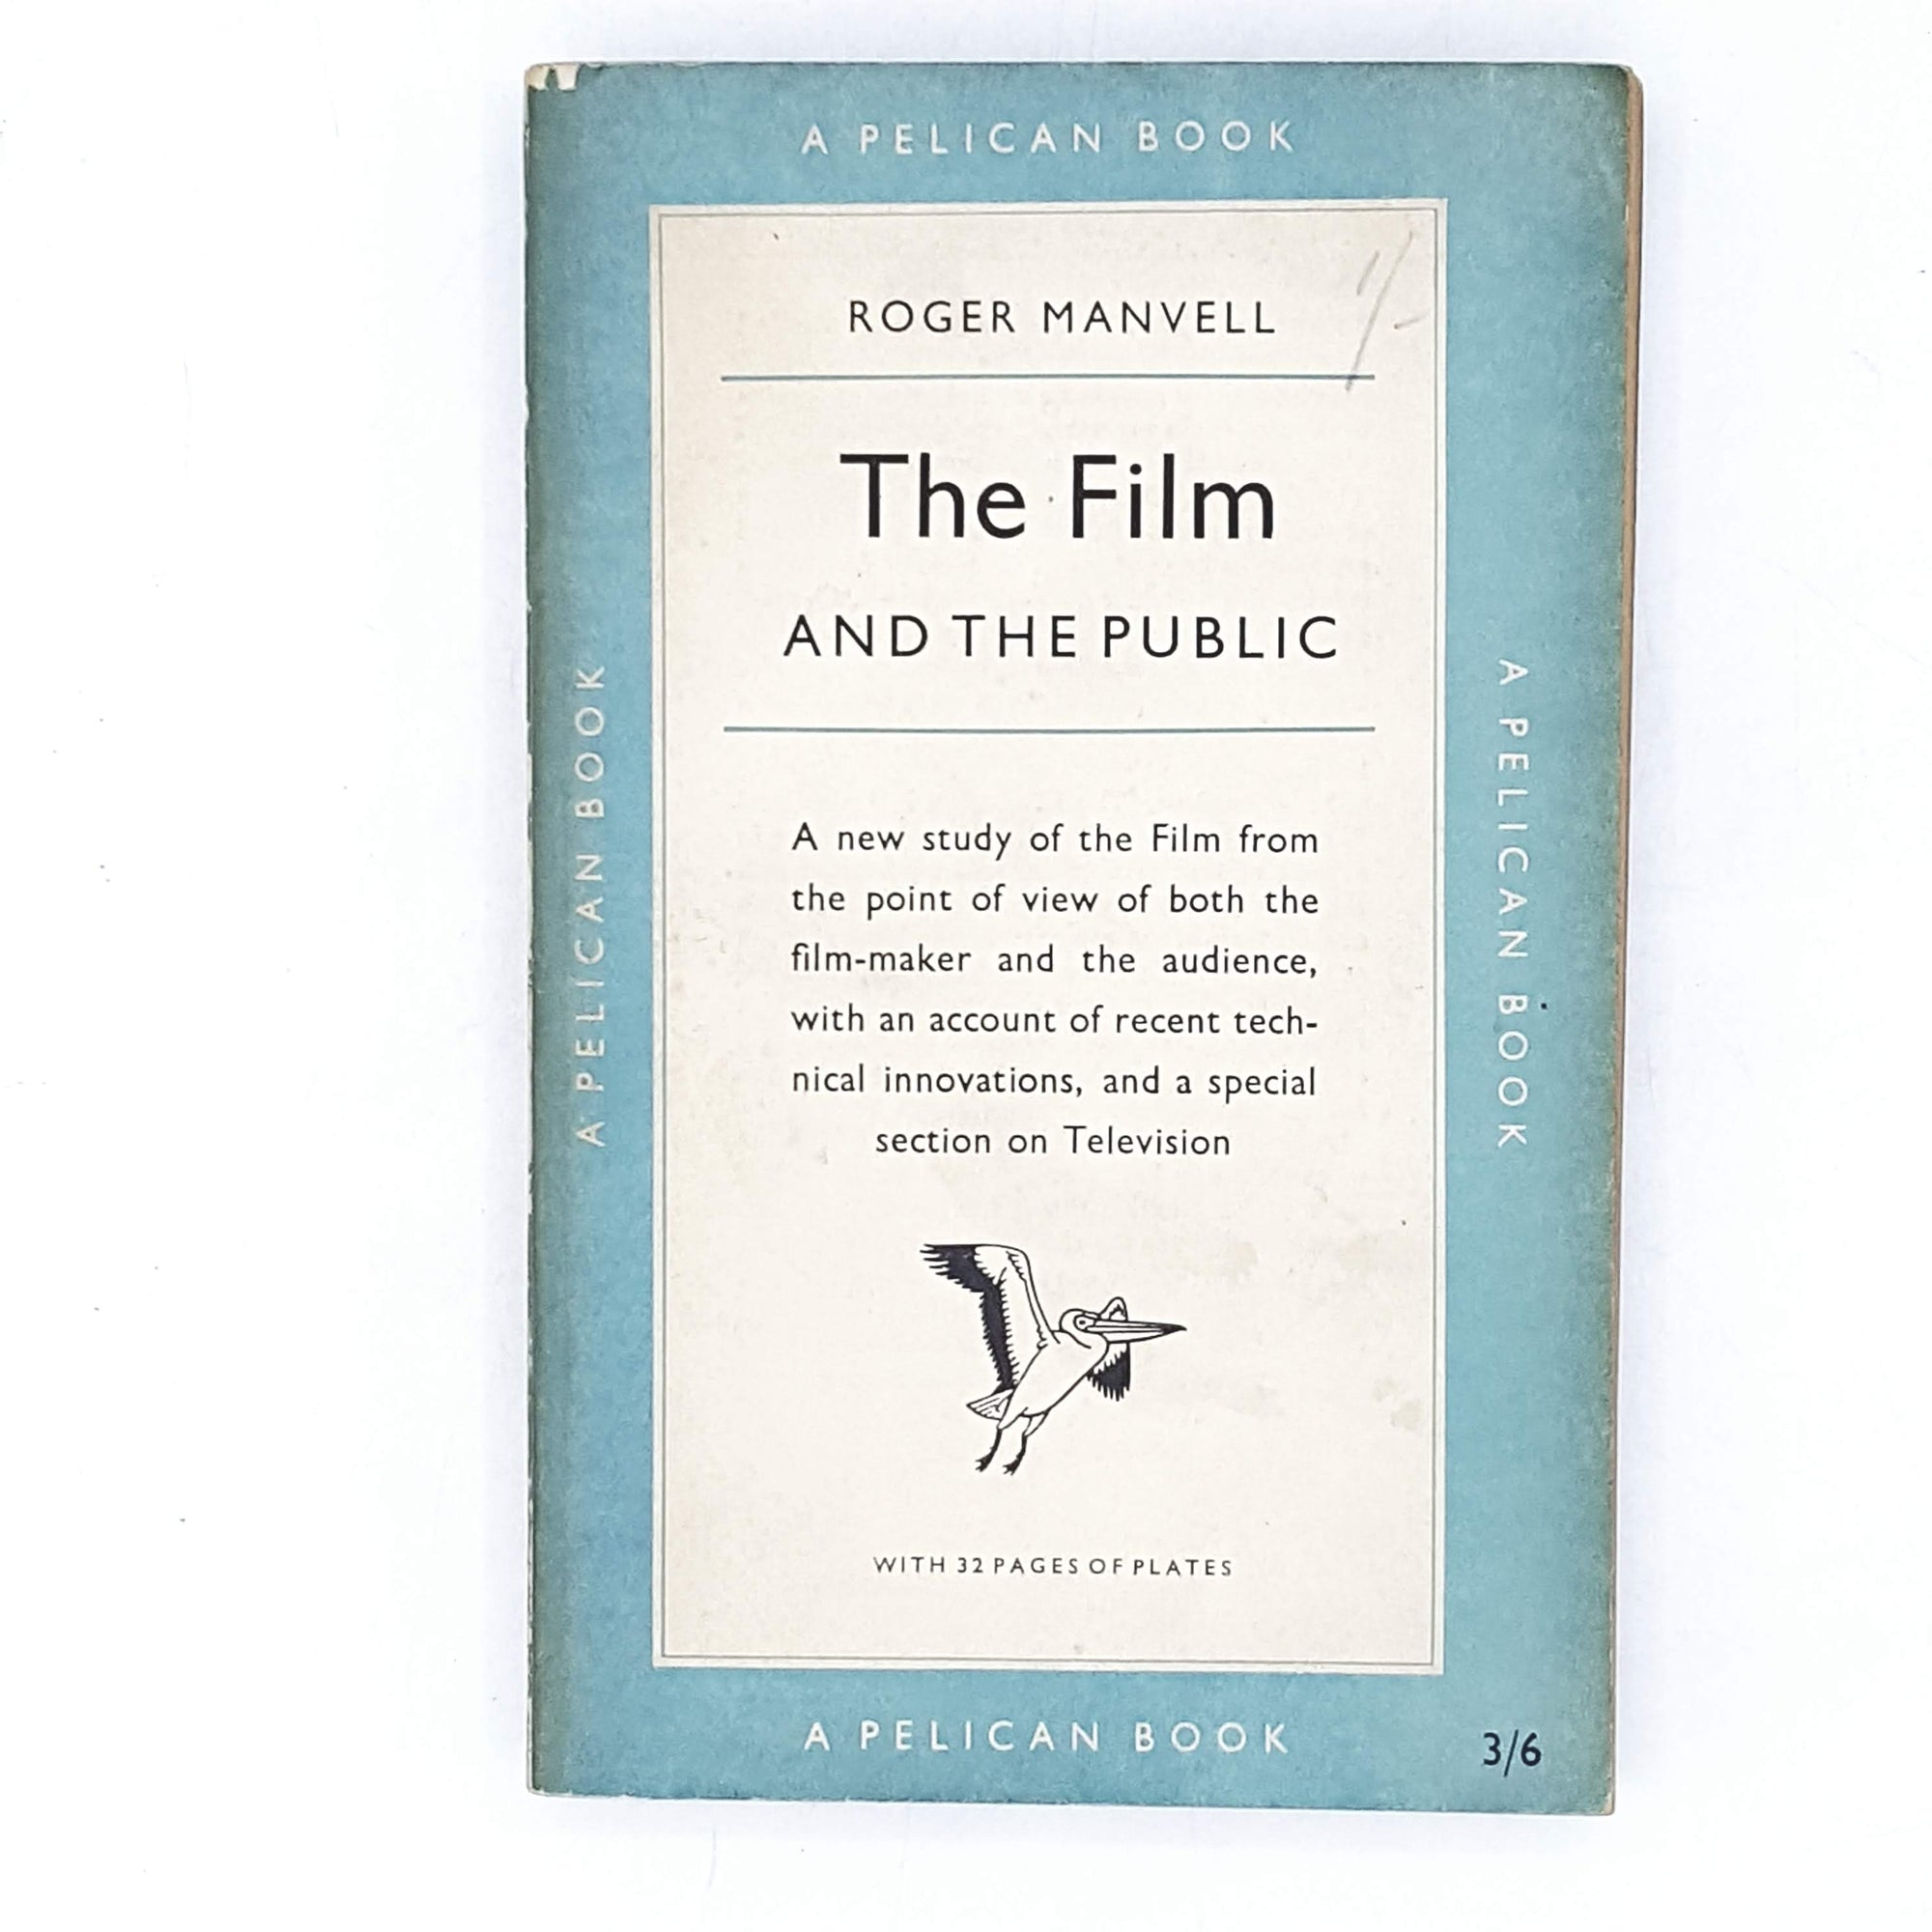 Vintage Pelican The Film and the Public by Roger Manvell 1955